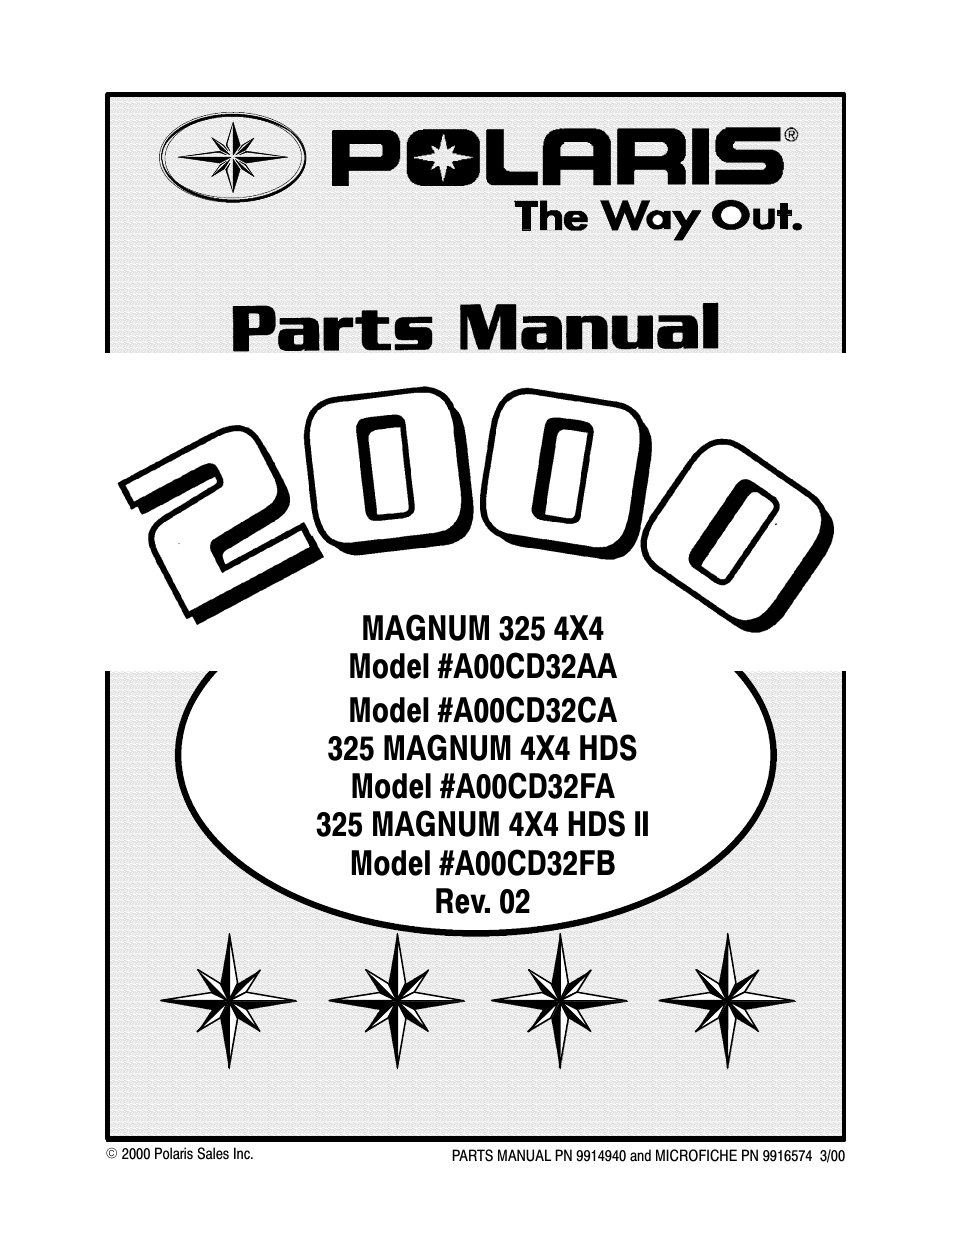 Manual volvo mp8 ebook array polaris manuals download ebook rh polaris manuals download ebook argodata us fandeluxe